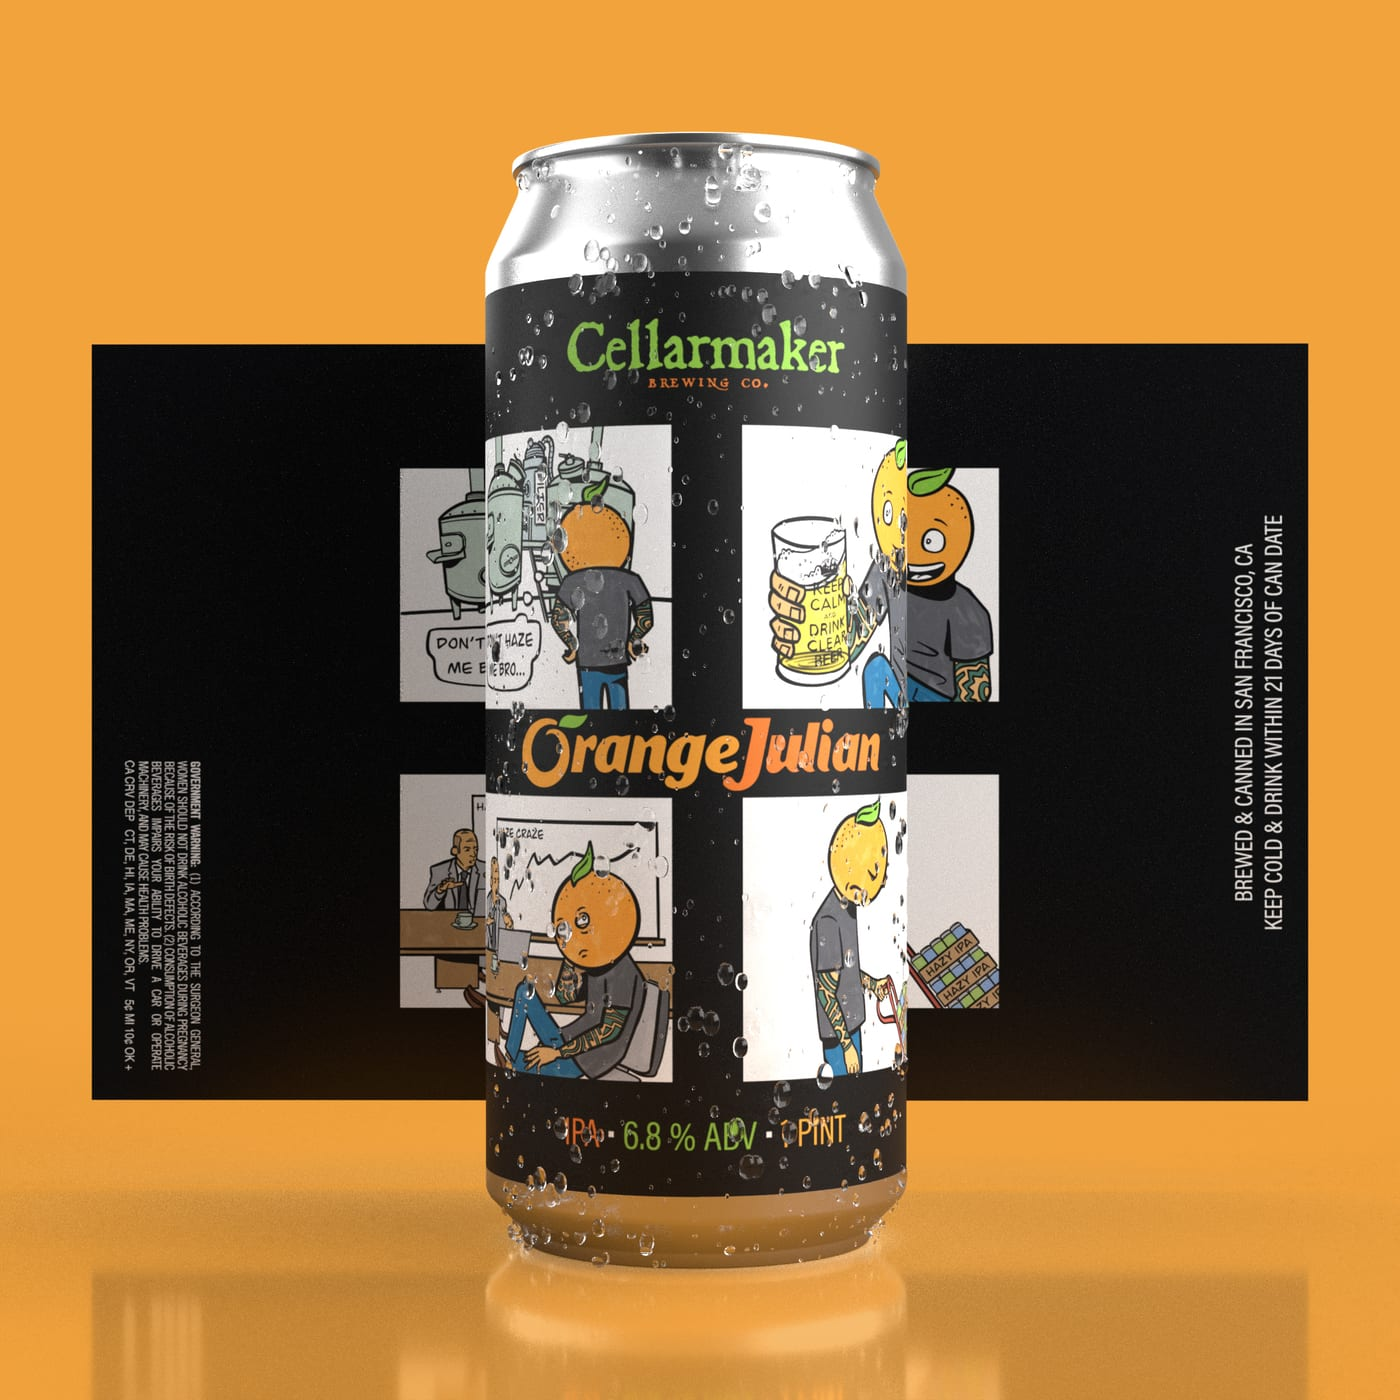 ORANGE JULIAN & IMPERIAL COFFEE & CIGS 1ST TIME IN CANS!!! + THE GLOW ~ SOLD OUT